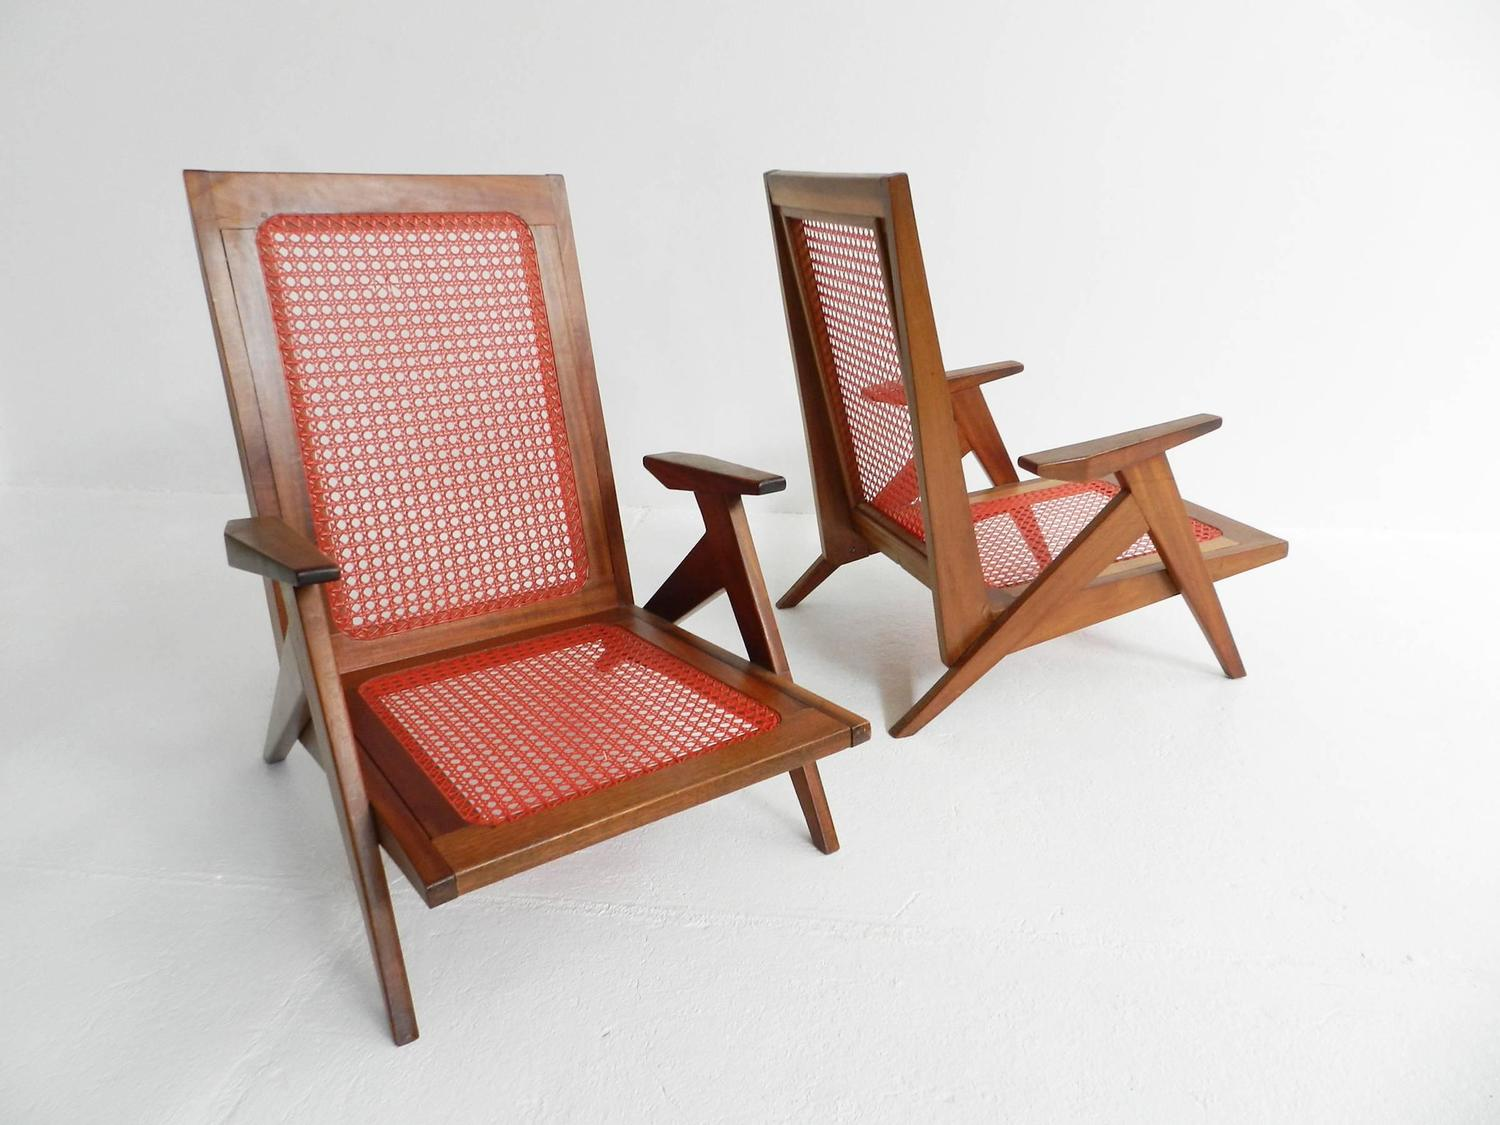 Marvelous Veranda Lounge Chairs For Sale At 1stdibs